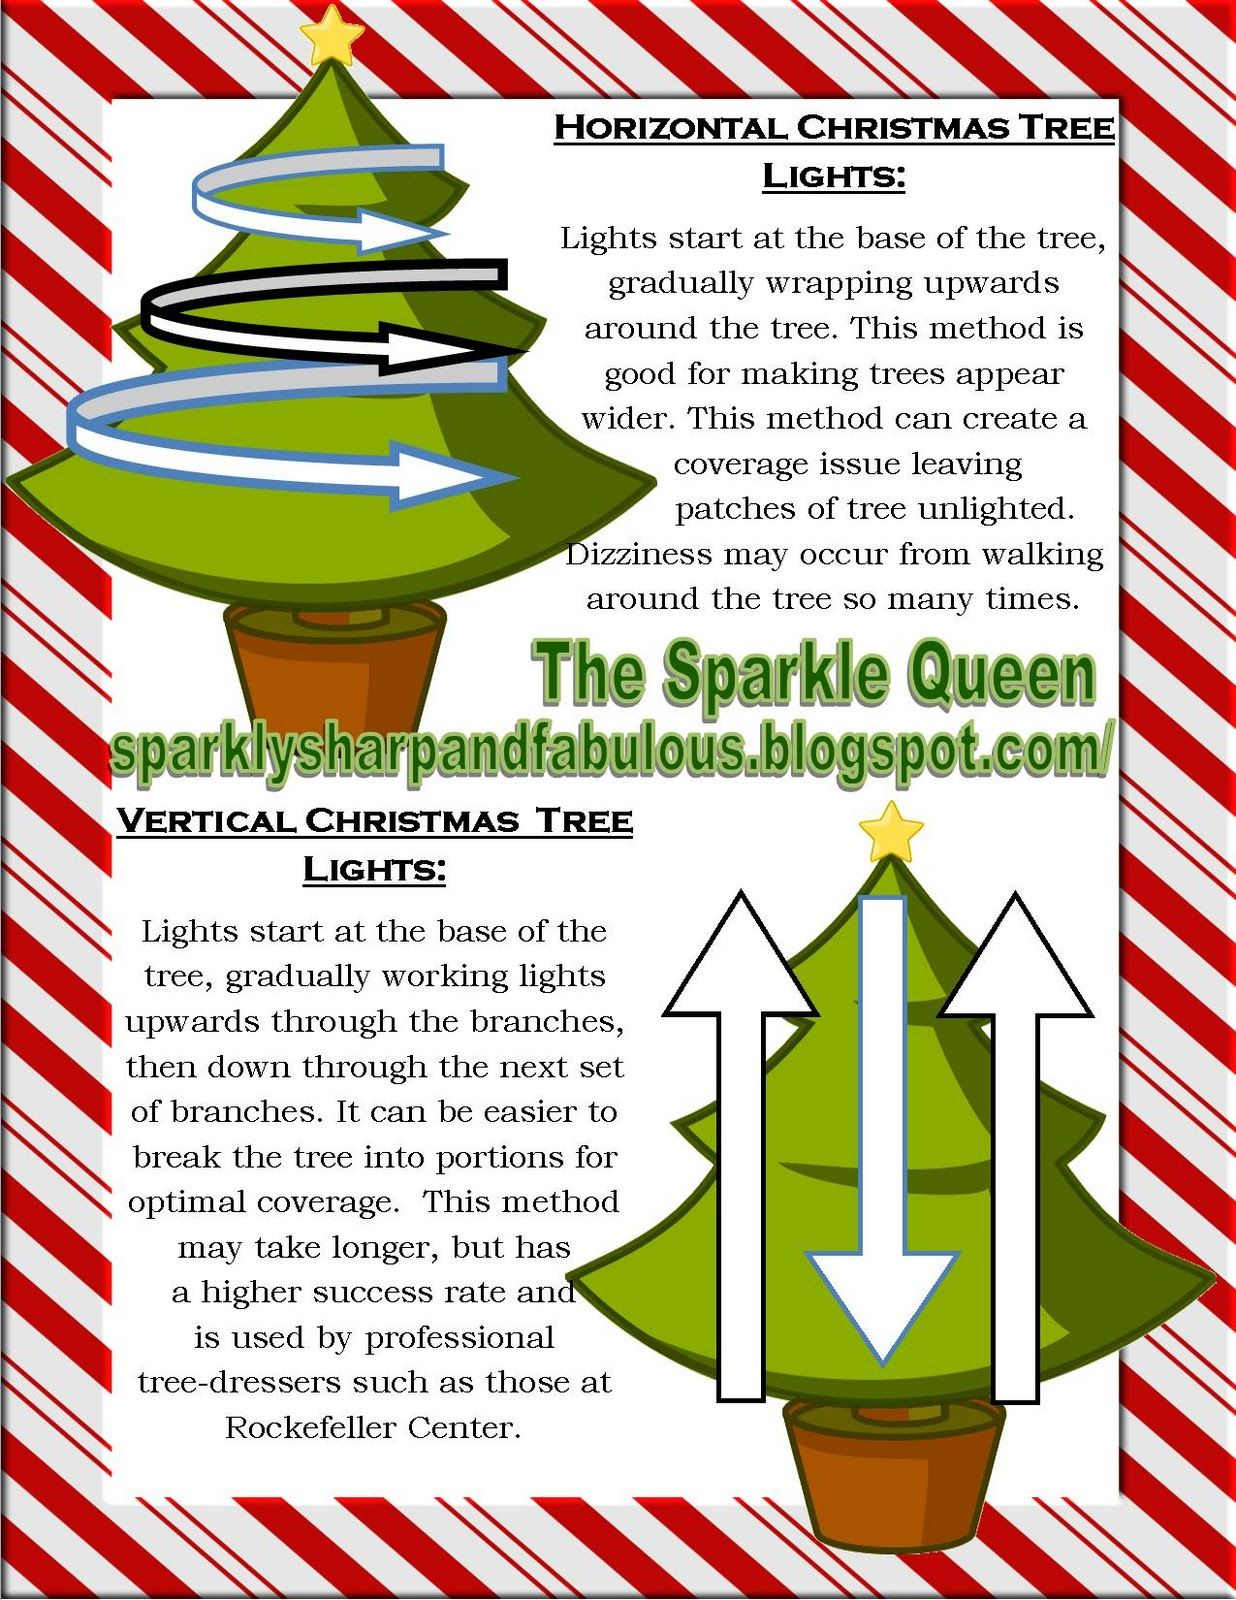 The Sparkle Queen Art Of Lighting A Christmas Tree Vertical Vs Horizontal